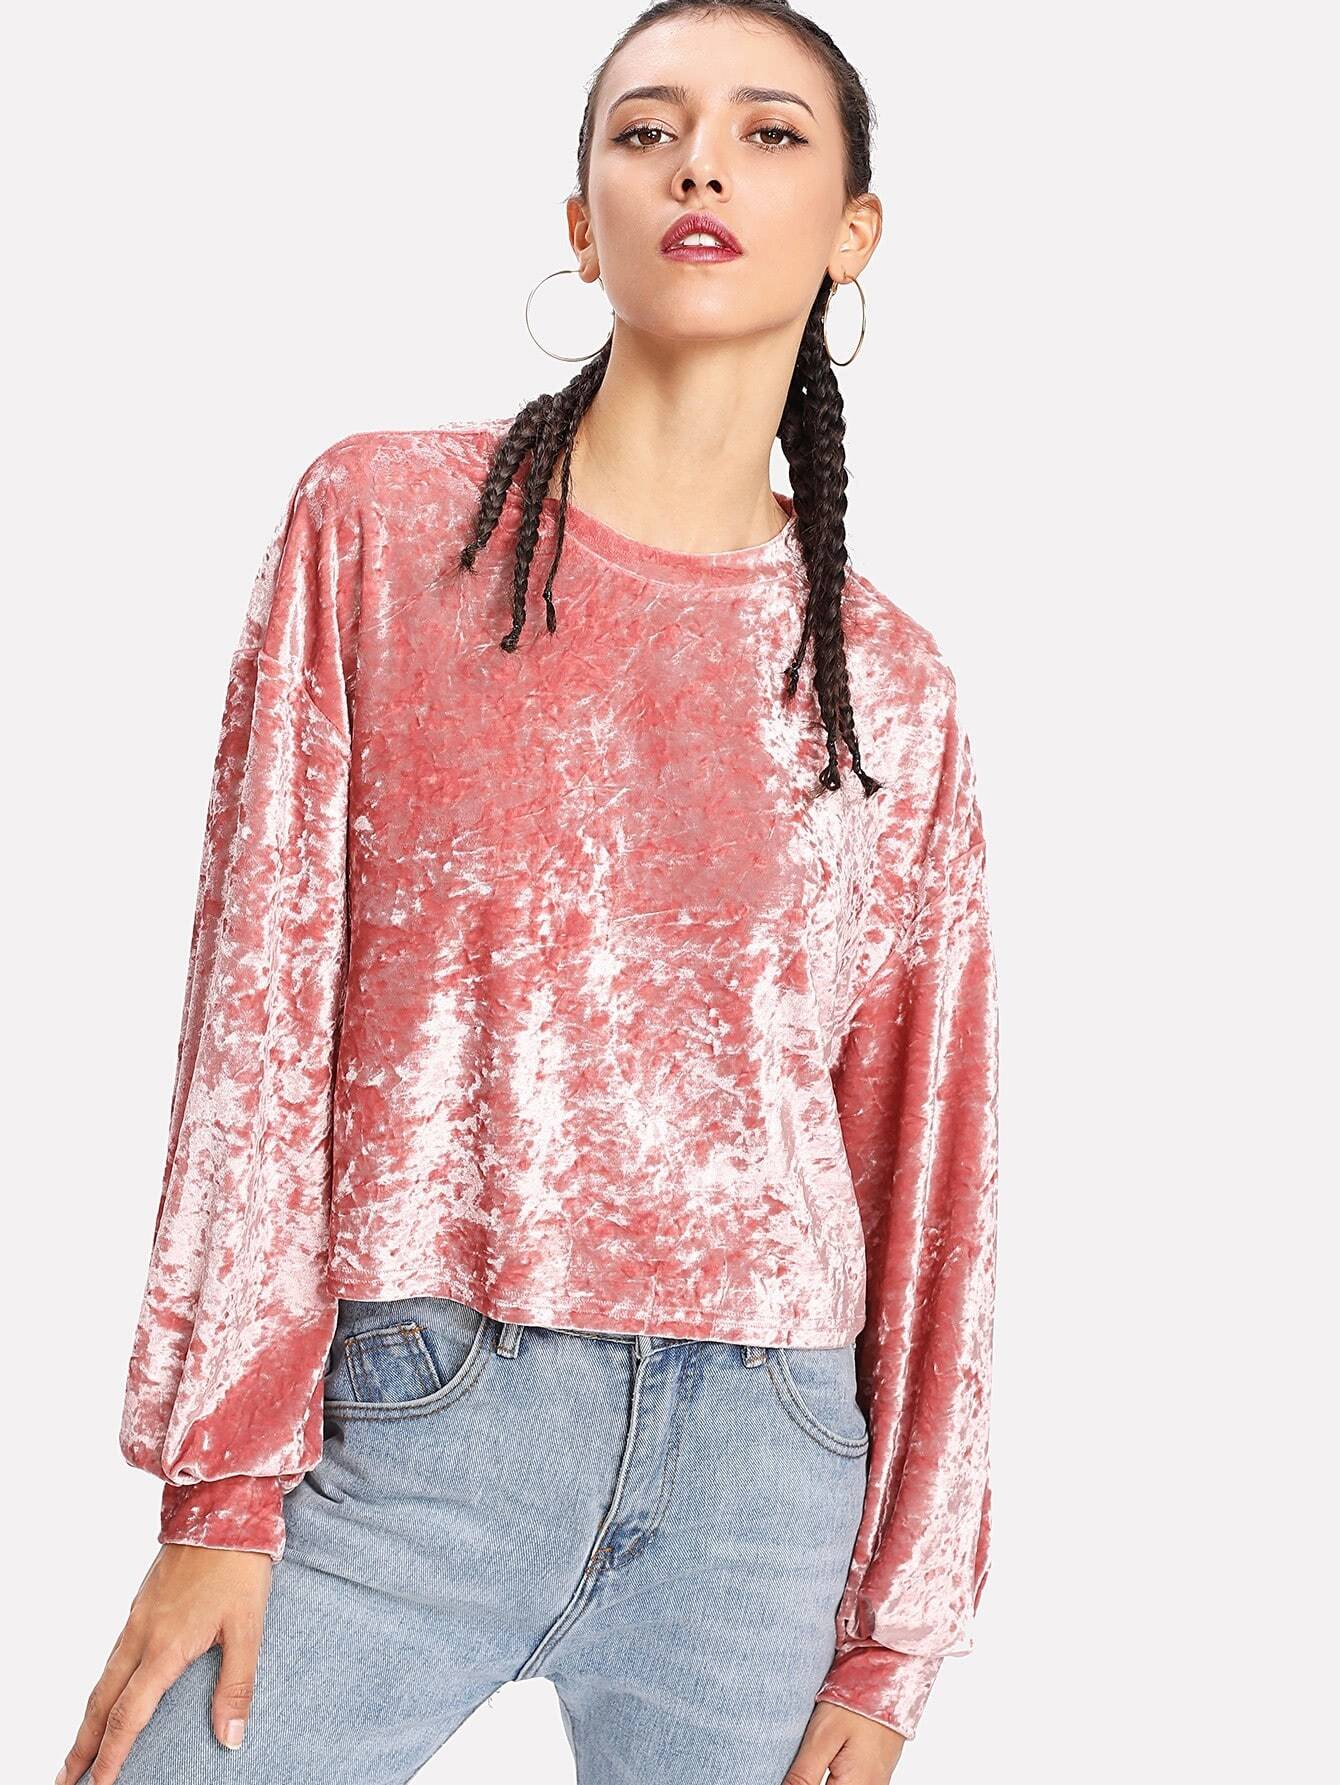 Drop Shoulder Crushed Velvet Tee two tone drop shoulder tee